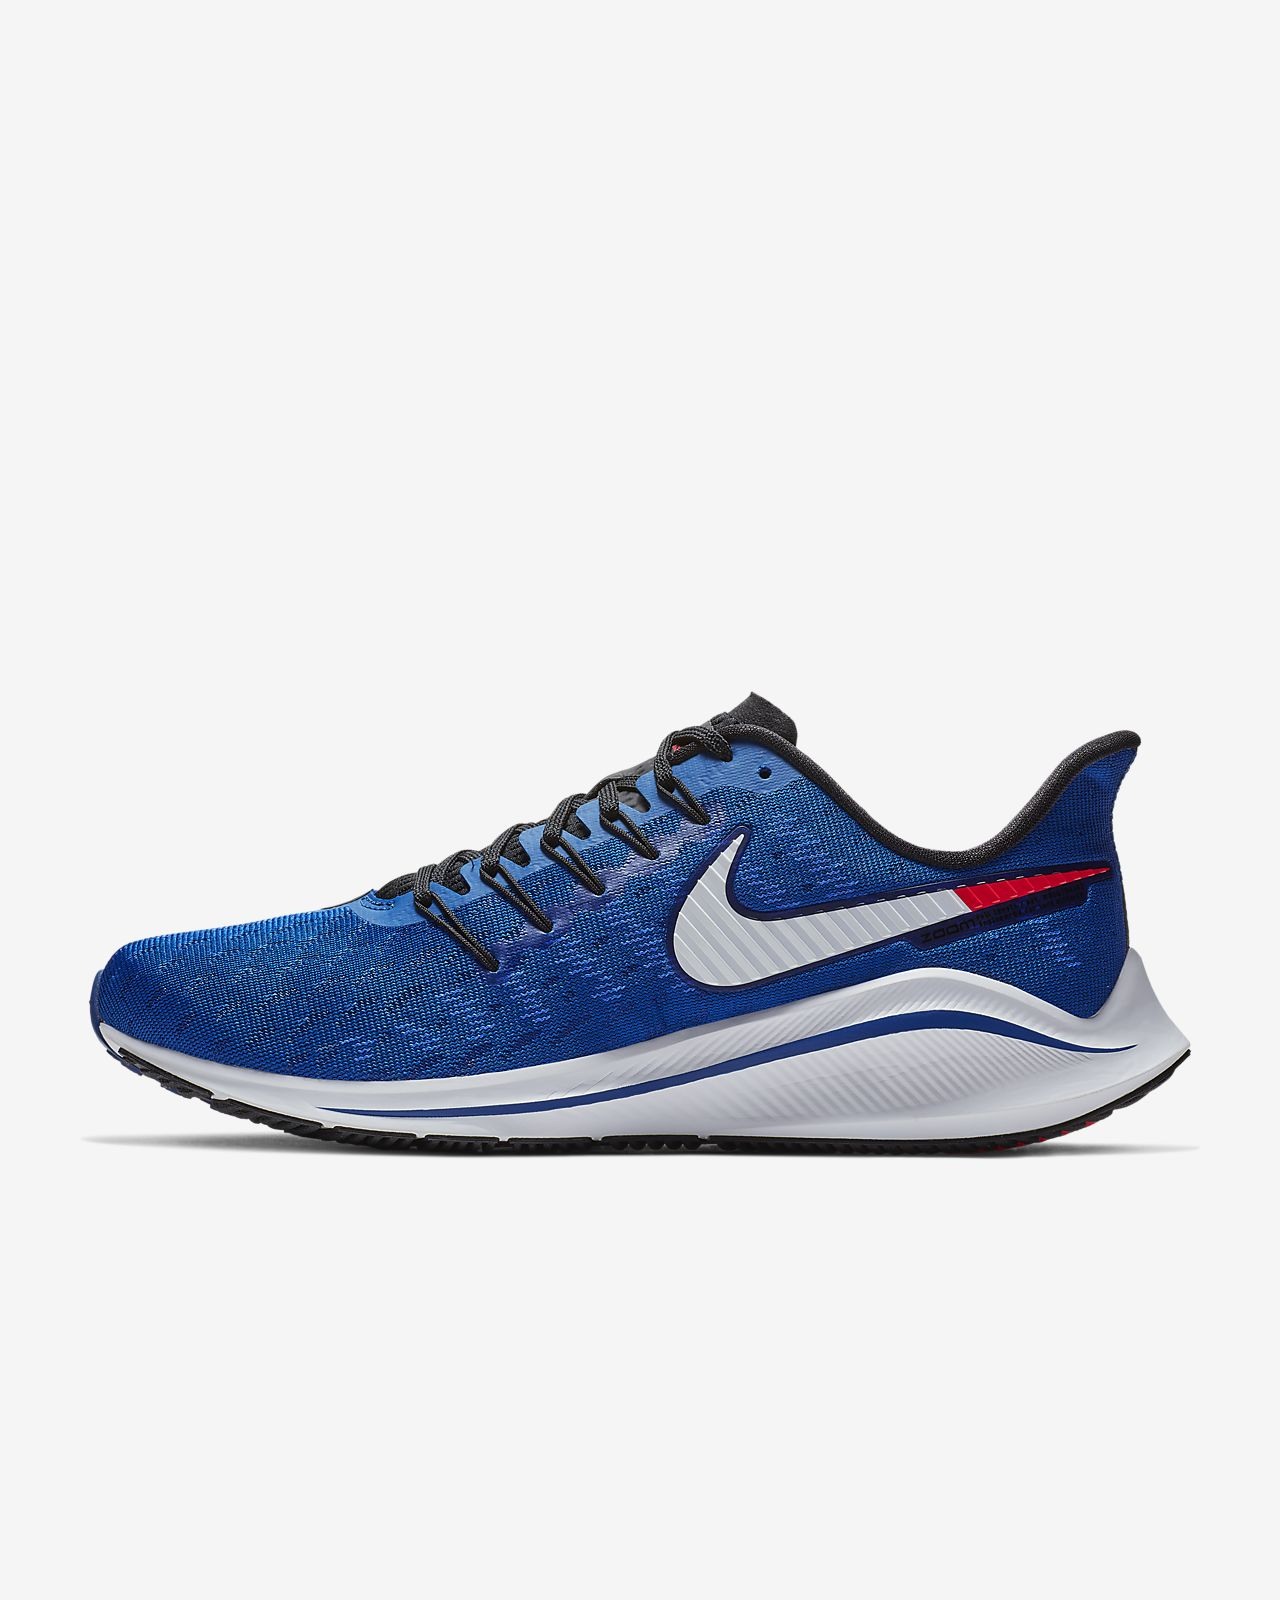 lowest price 45e39 7b60c ... Chaussure de running Nike Air Zoom Vomero 14 pour Homme